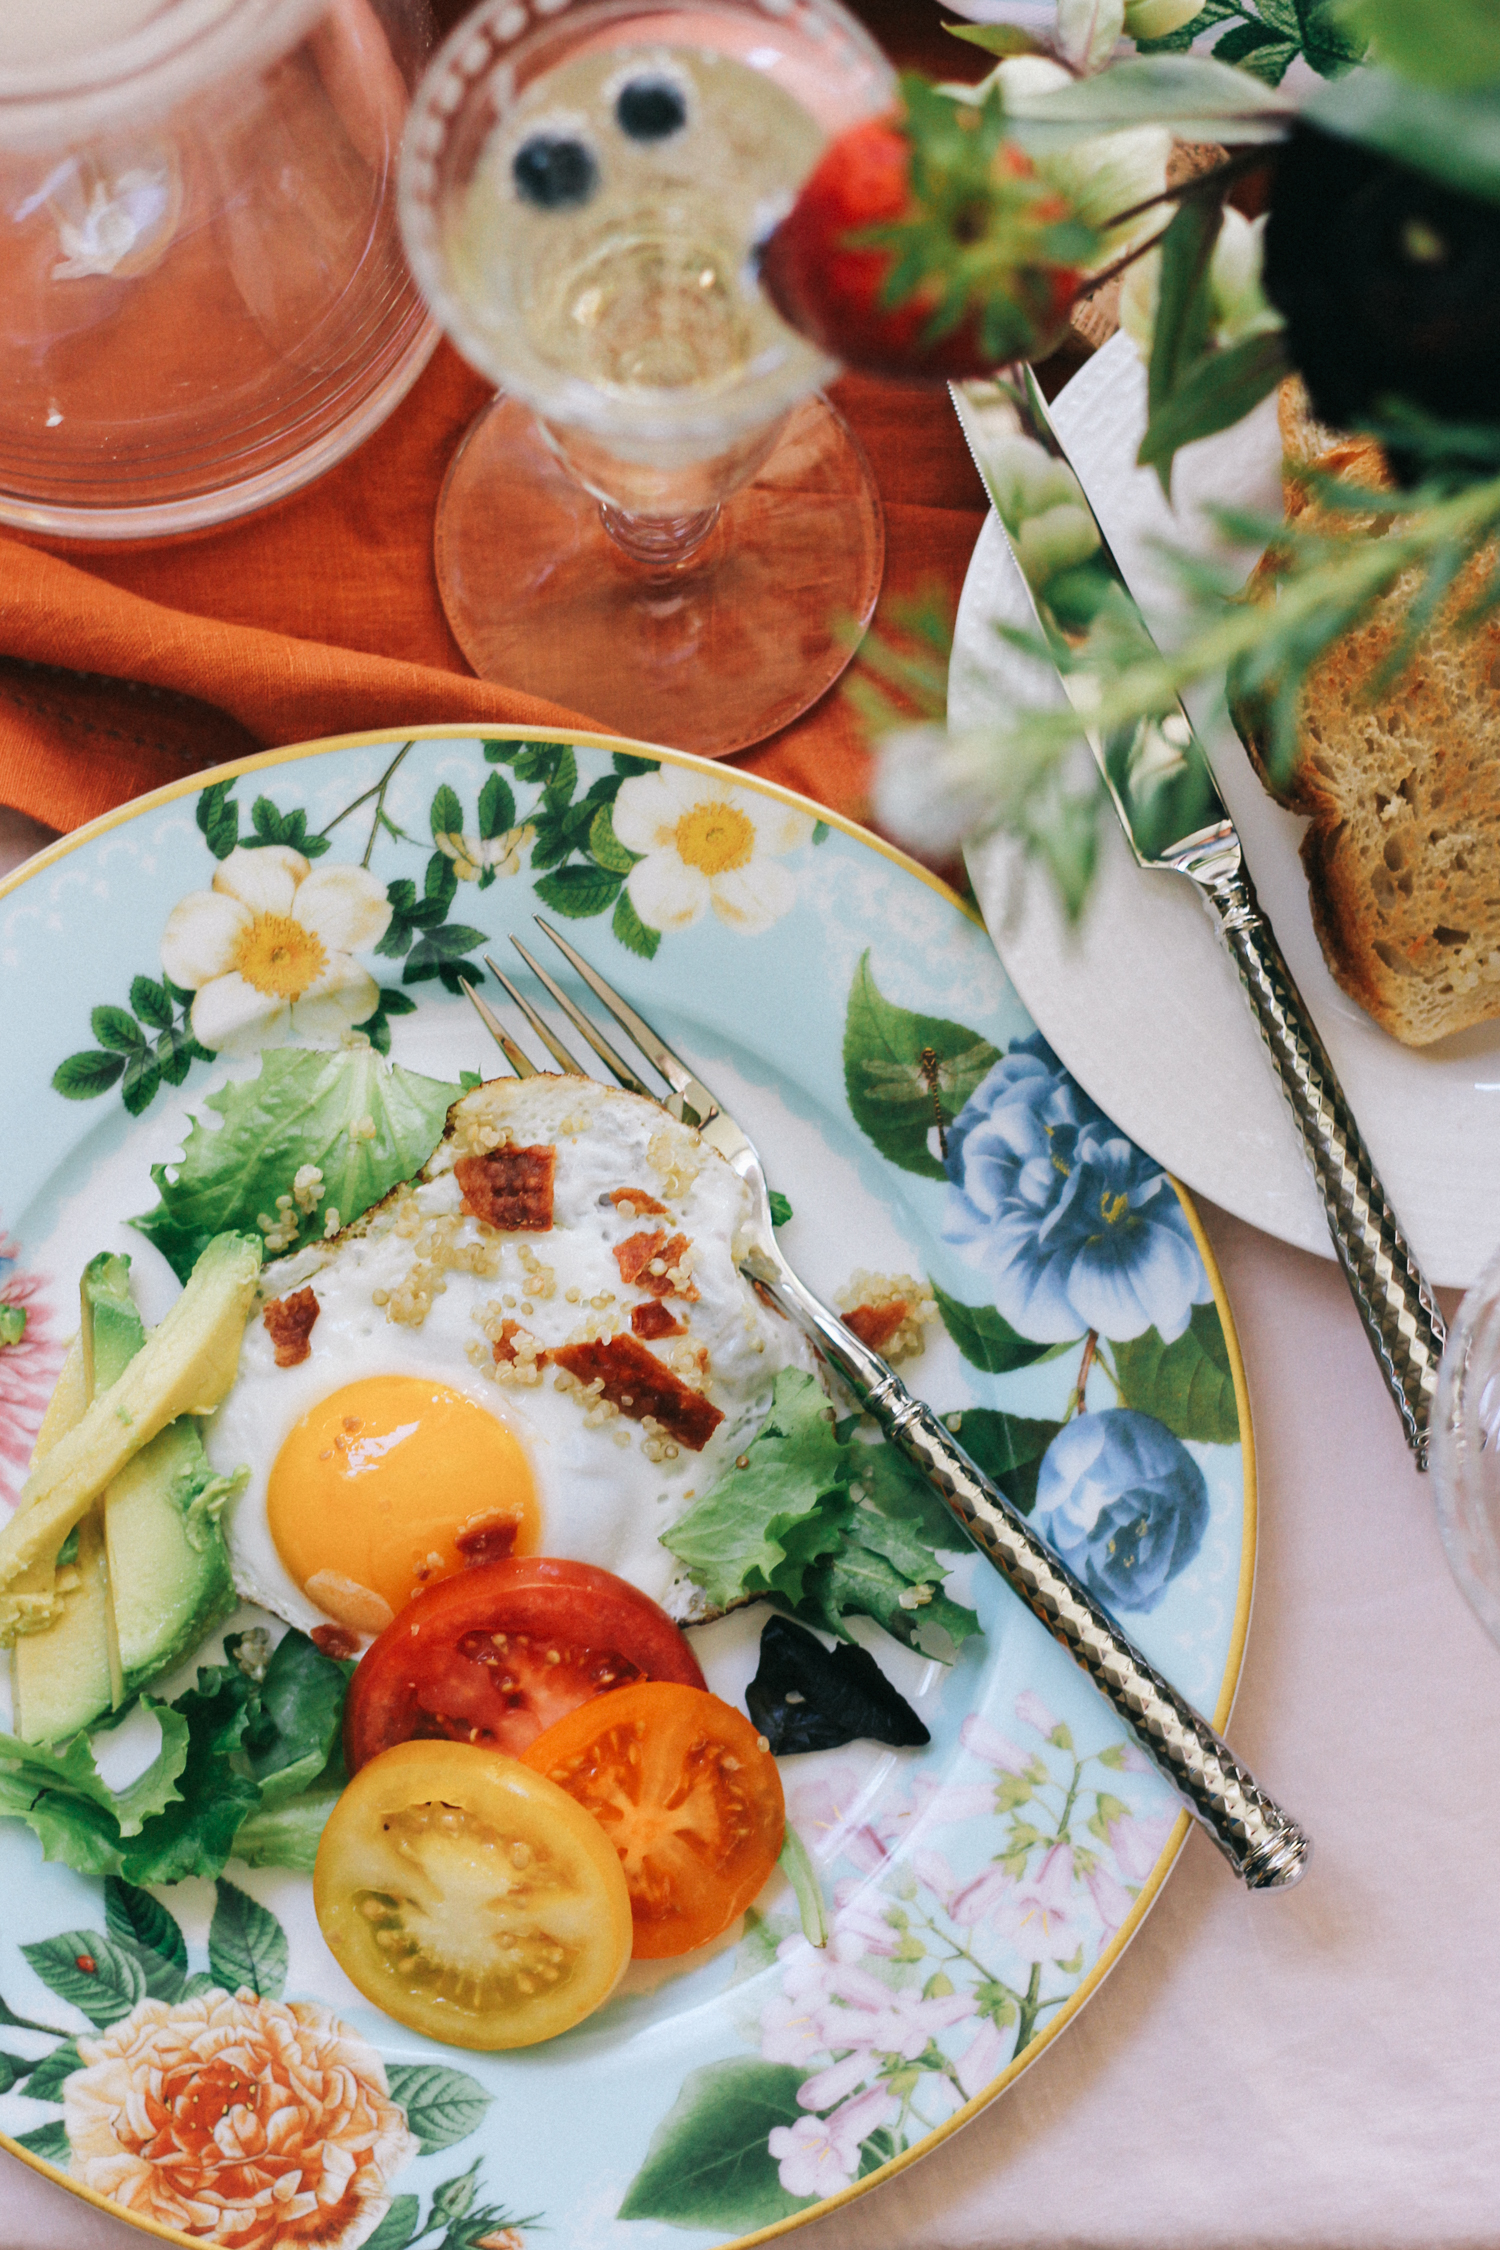 Breakfast salad made with quinoa, bacon, tomatoes, avocado and eggs over-easy | A Fabulous Fete